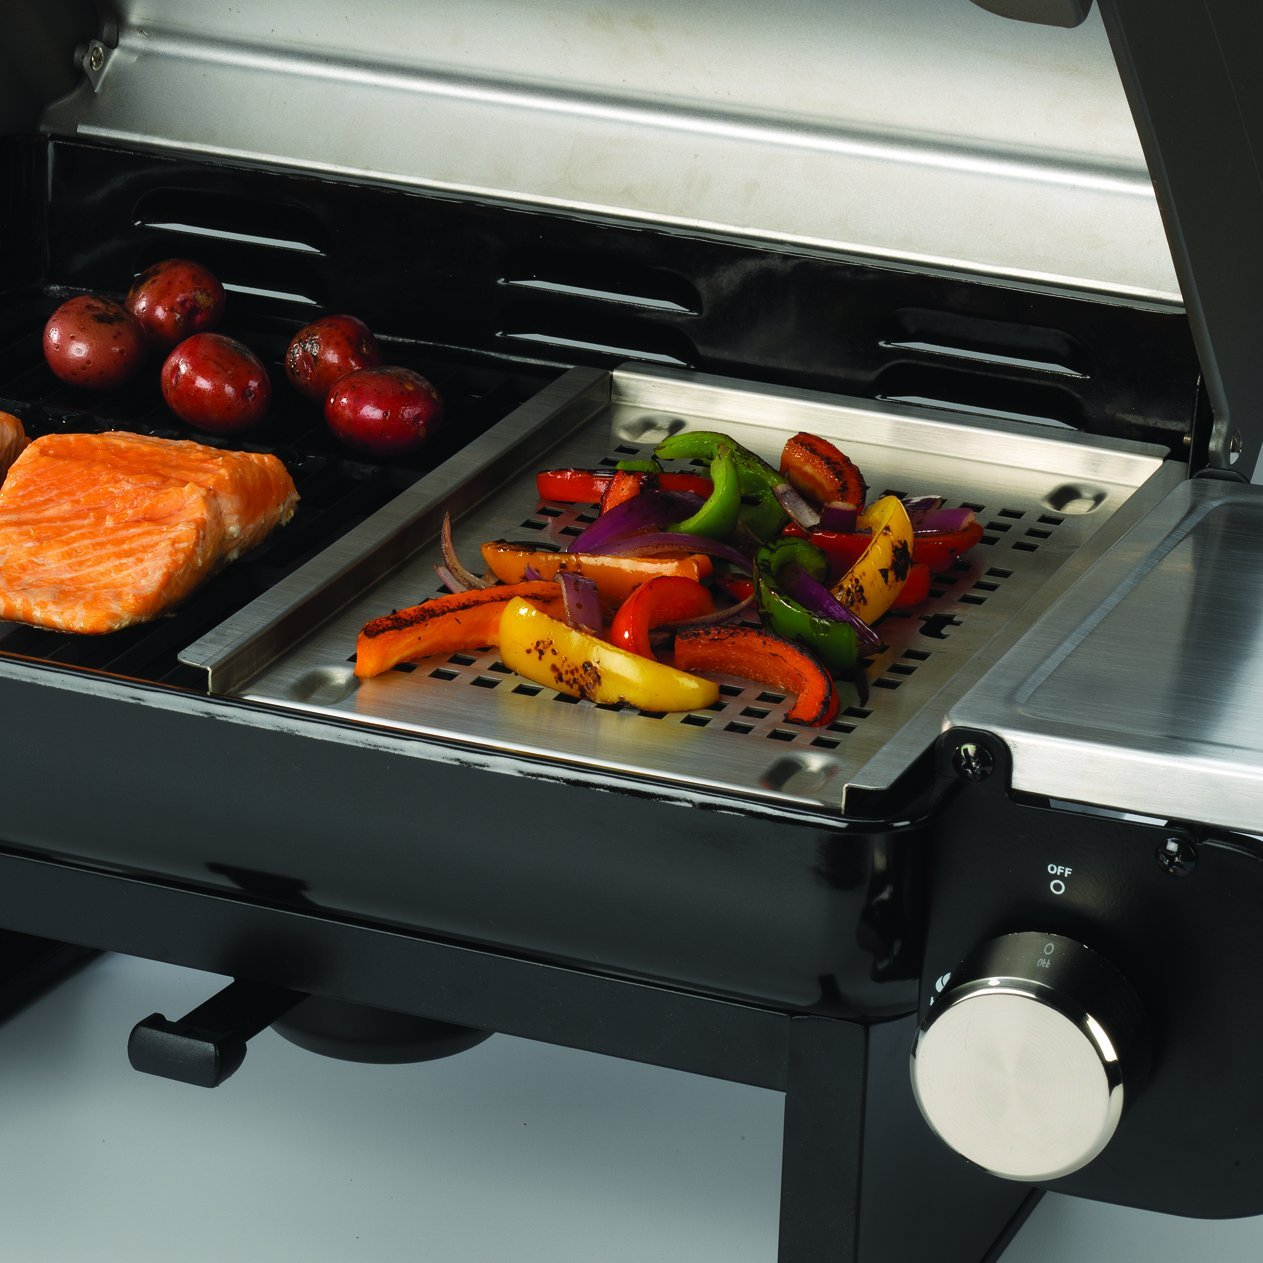 cuisinart cgg 200 all foods portable outdoor tabletop propane gas grill review gas grills details. Black Bedroom Furniture Sets. Home Design Ideas